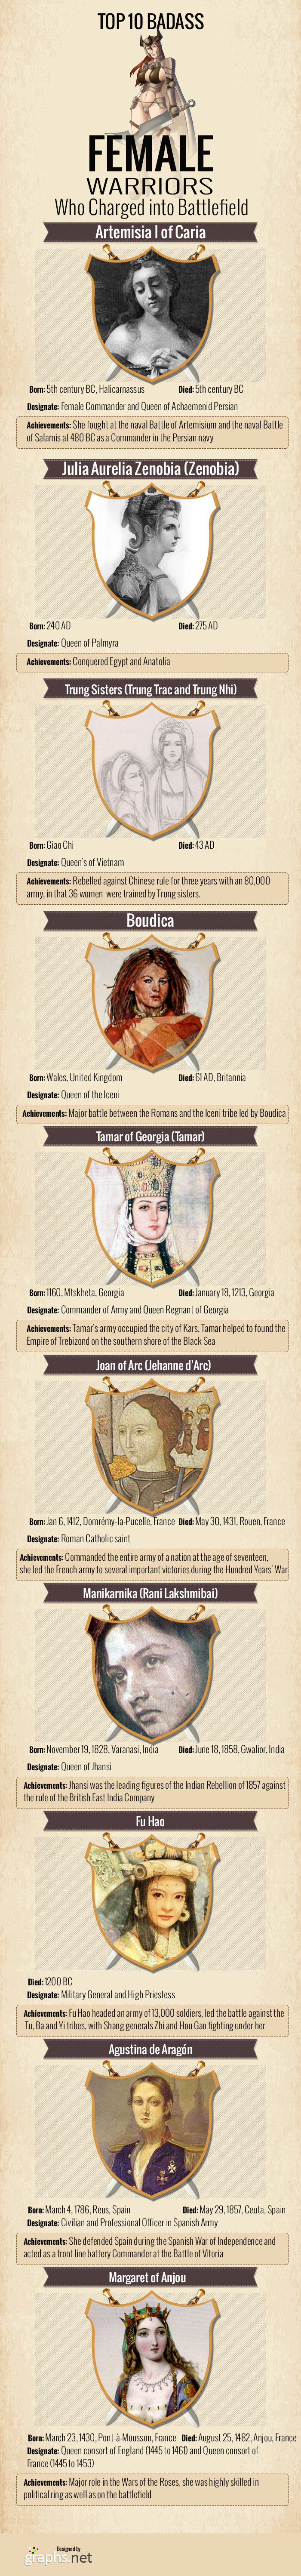 Top 10 Badass Female Warriors Who Charged into Battlefield